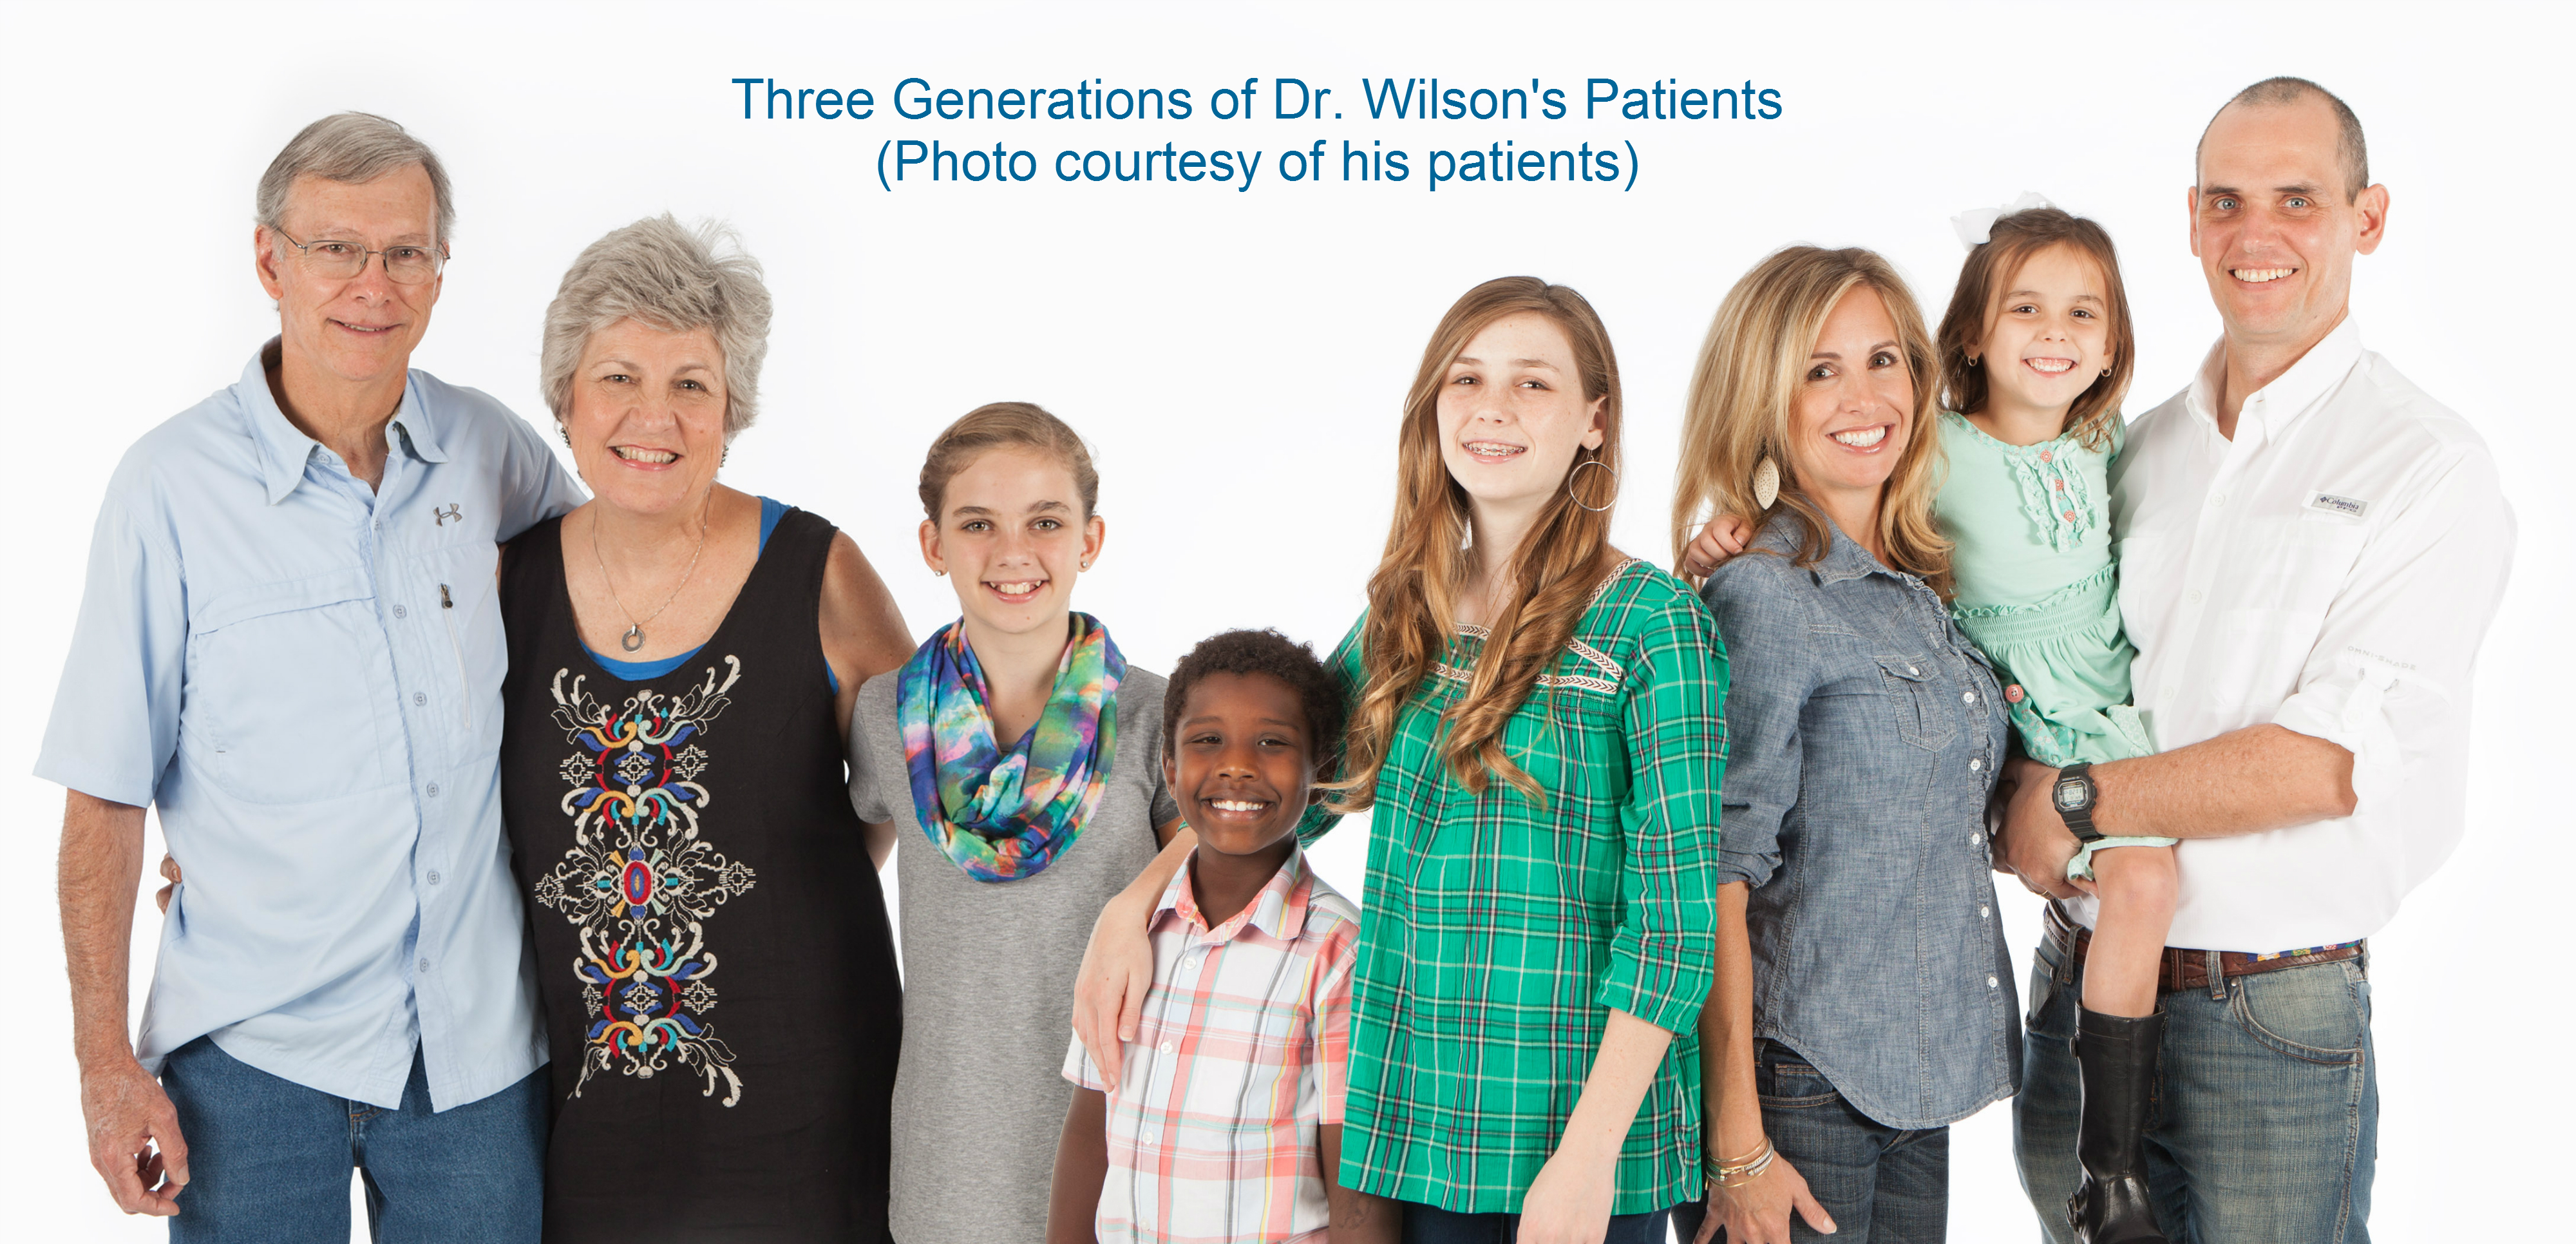 Three generations of Dr. Wilson's Patients